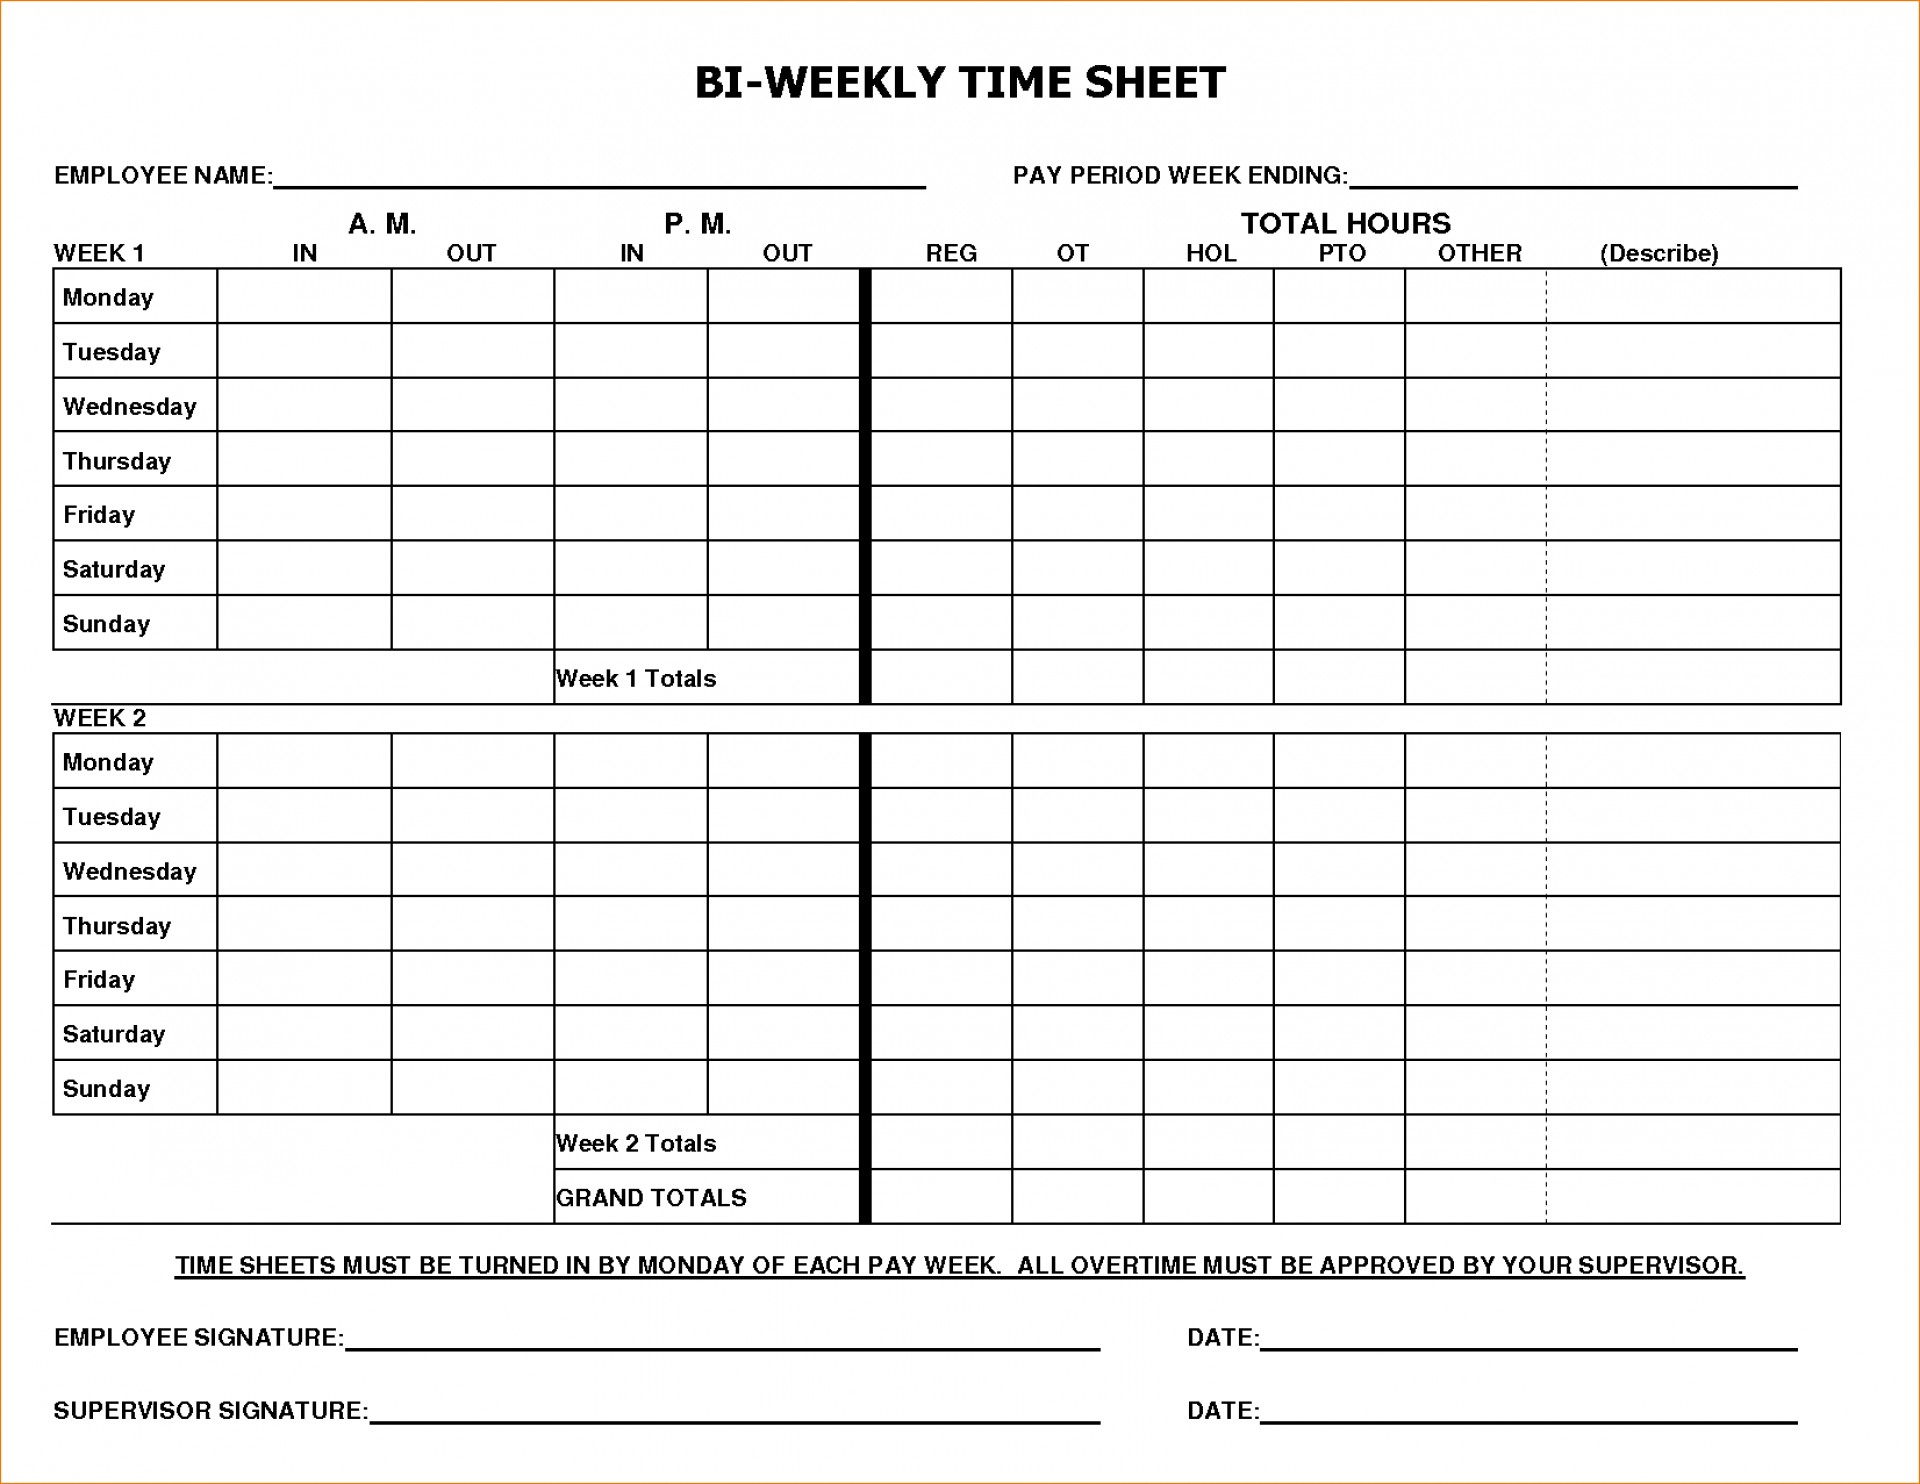 012 Timesheet Template Free Printable Of Best Time Sheets Templates - Free Printable Time Sheets Forms